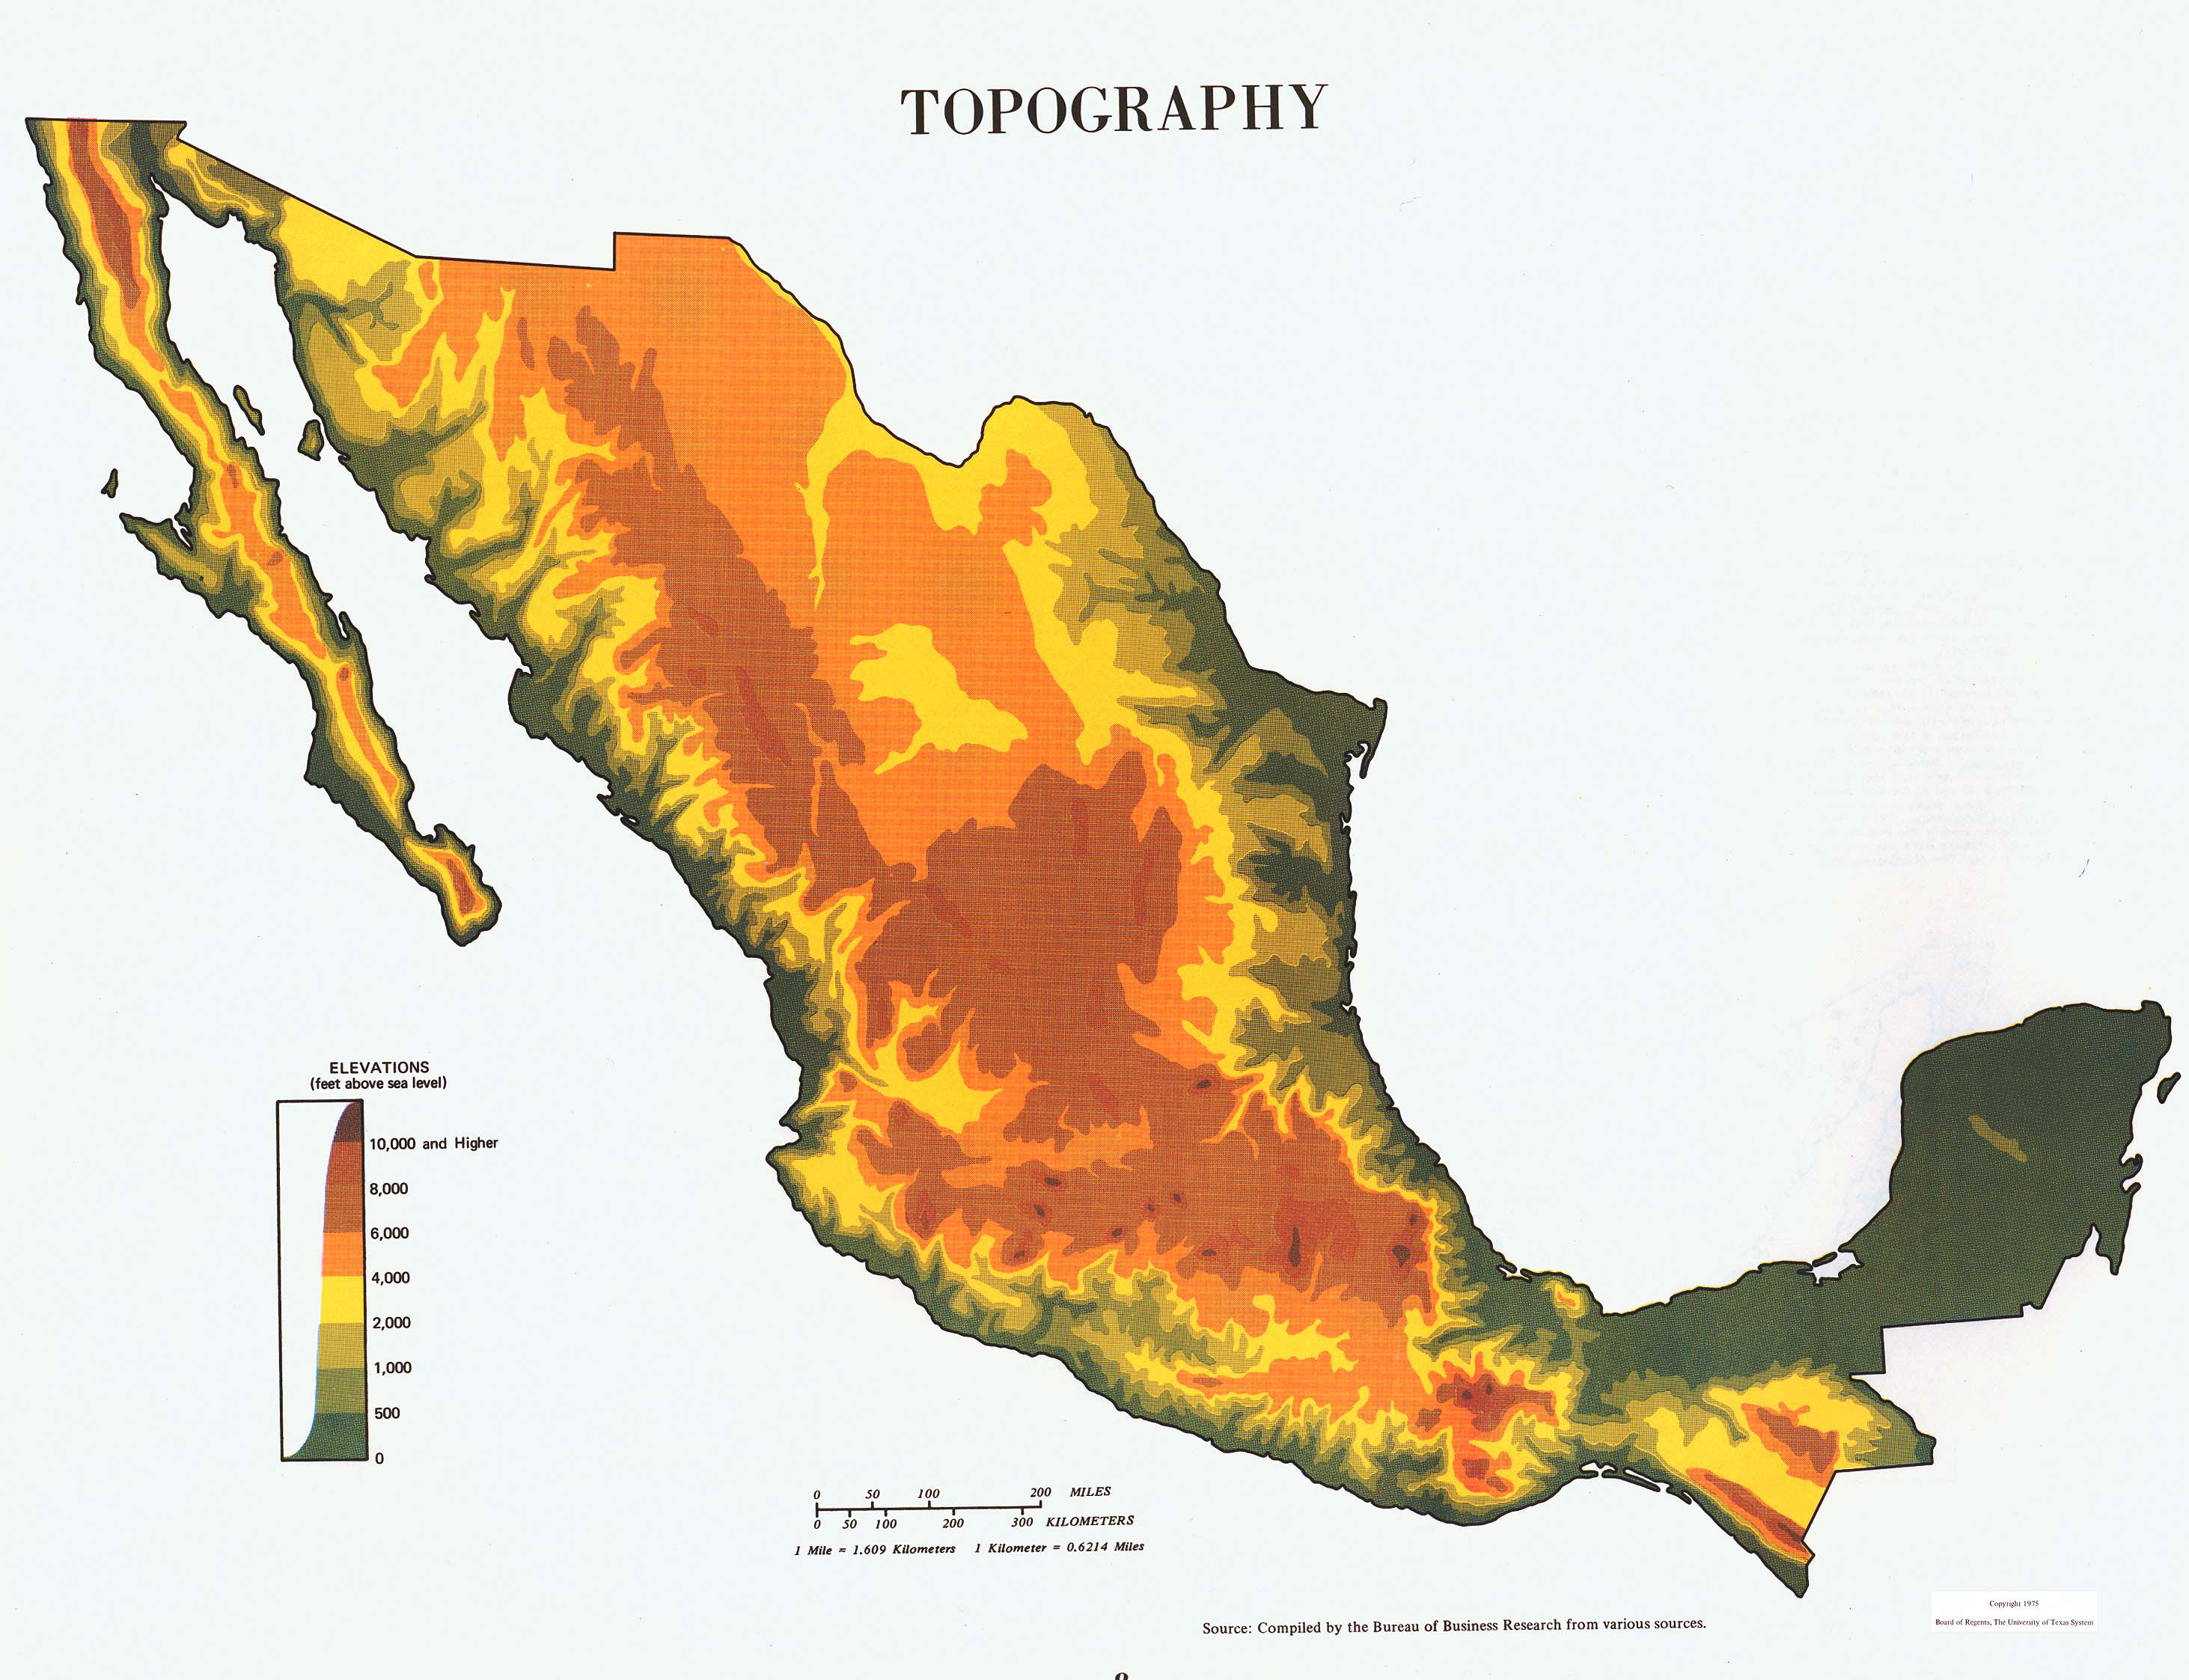 large topography map of mexico 1975